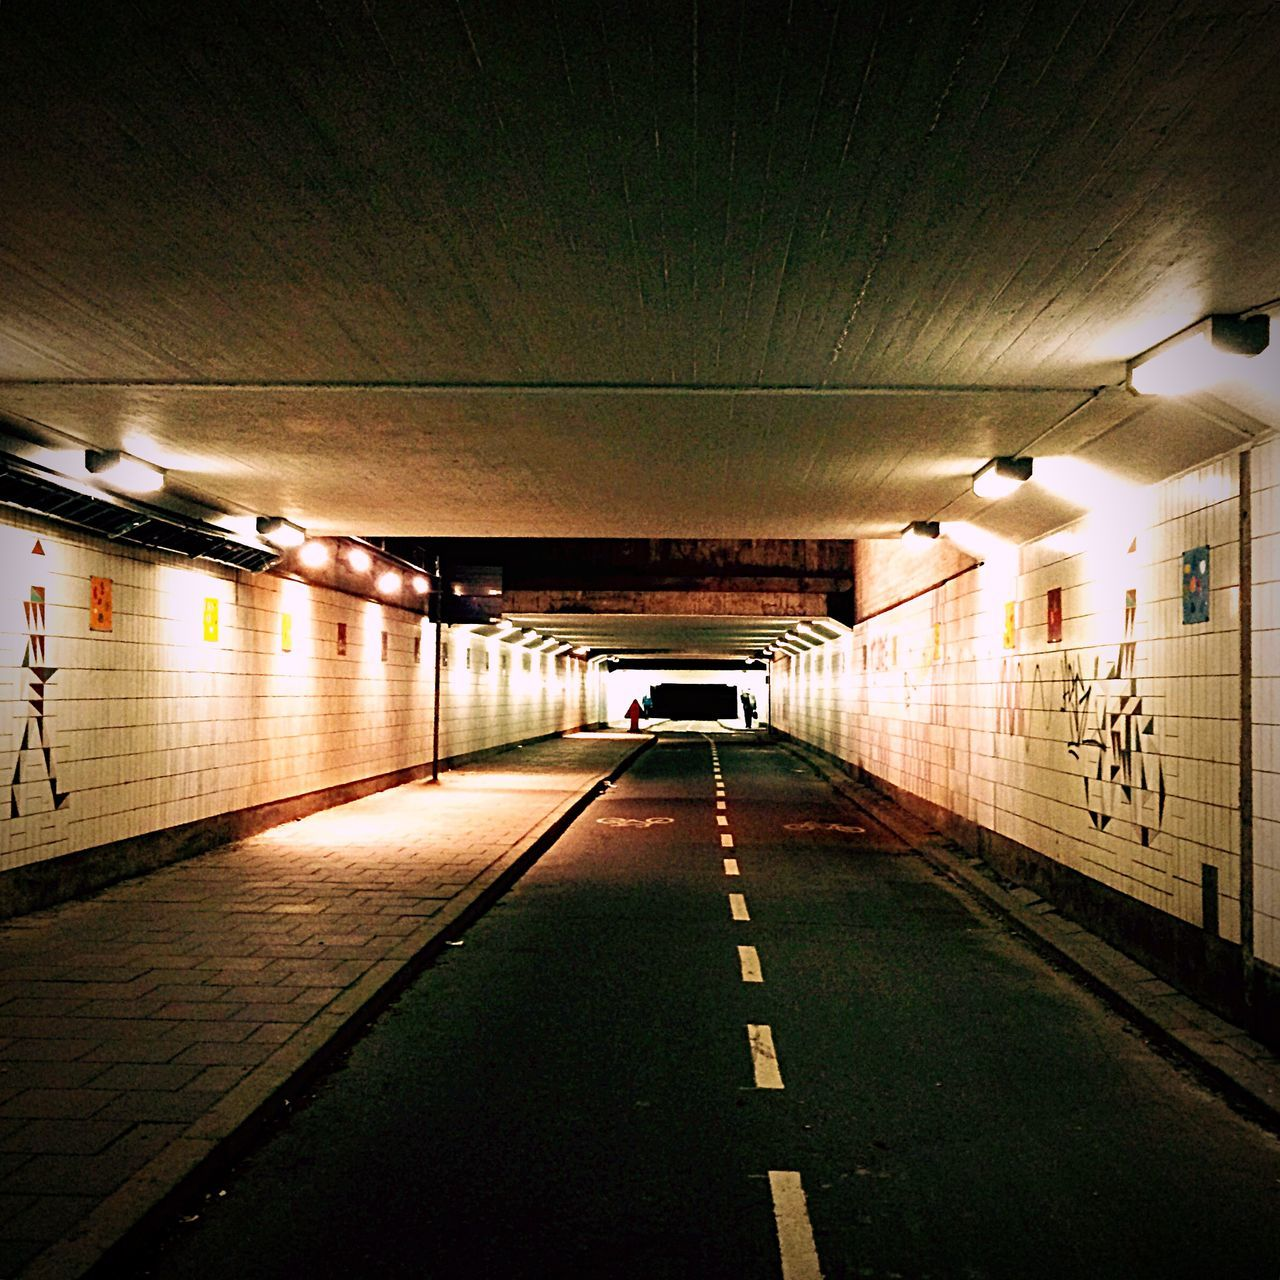 Urbanphotography September Walking Around Lights Light And Shadow From My Point Of View Stockholm Sweden Tunnel Urban Geometry